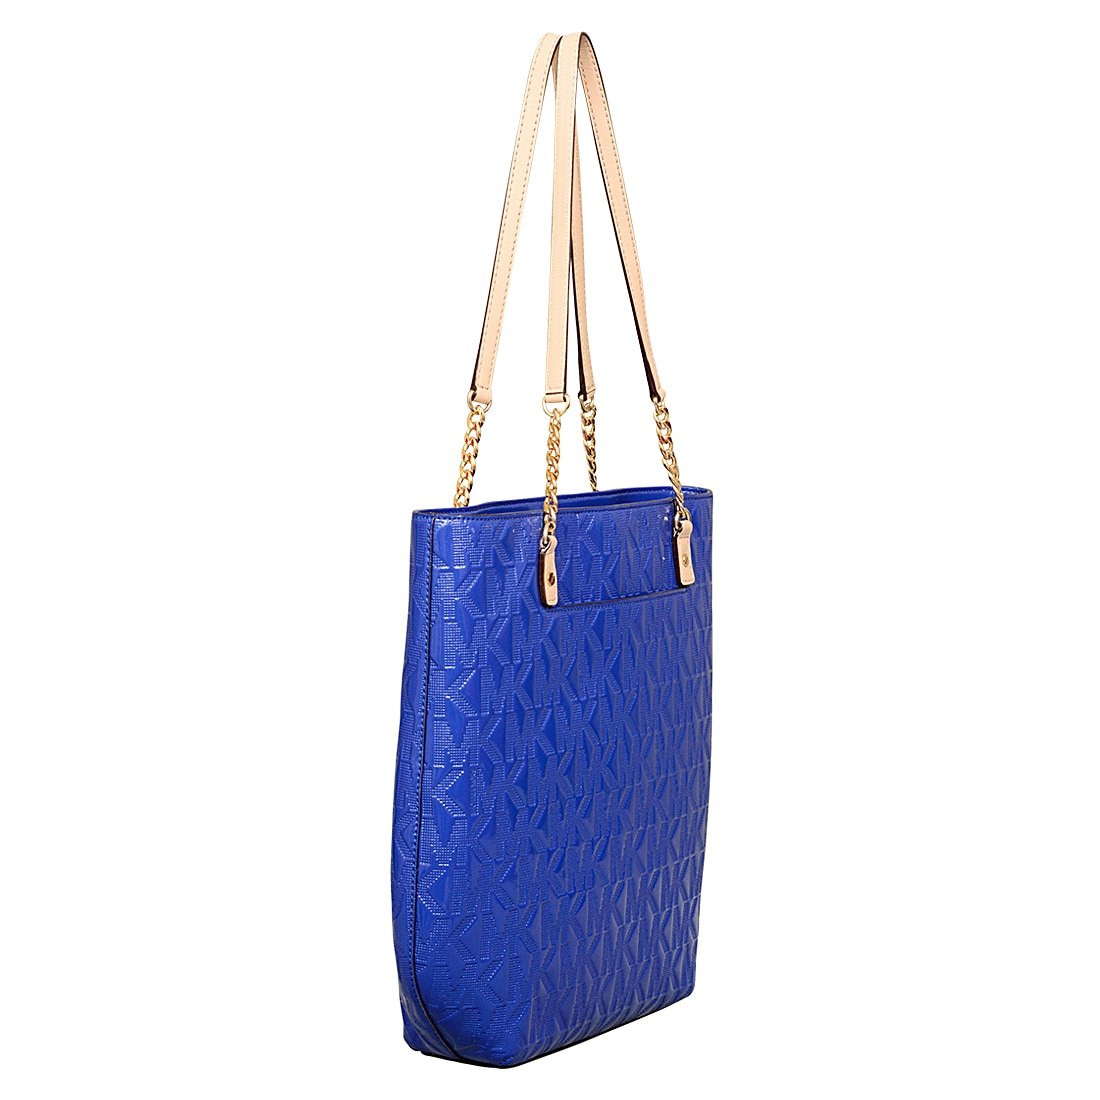 3ab91d5fe331a5 Shop Michael Kors Signature Leather Jet Set NS Chain Tote Bag - Free  Shipping Today - Overstock - 12554633